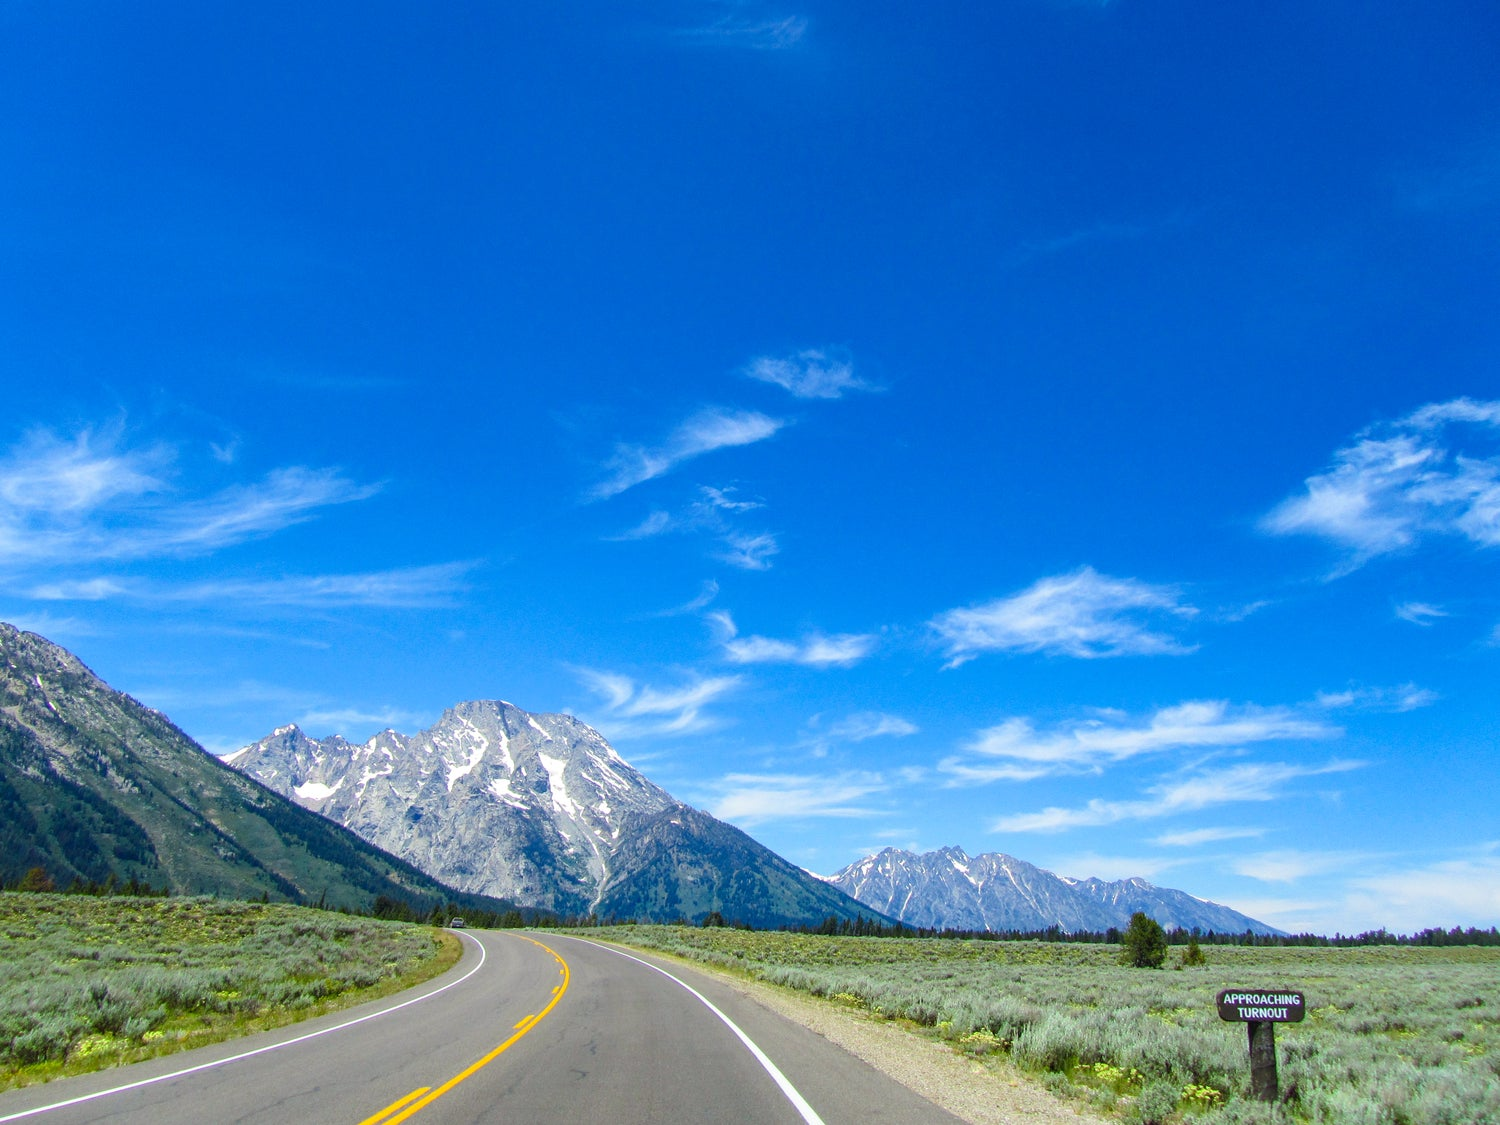 10 best summer road trip ideas for families!